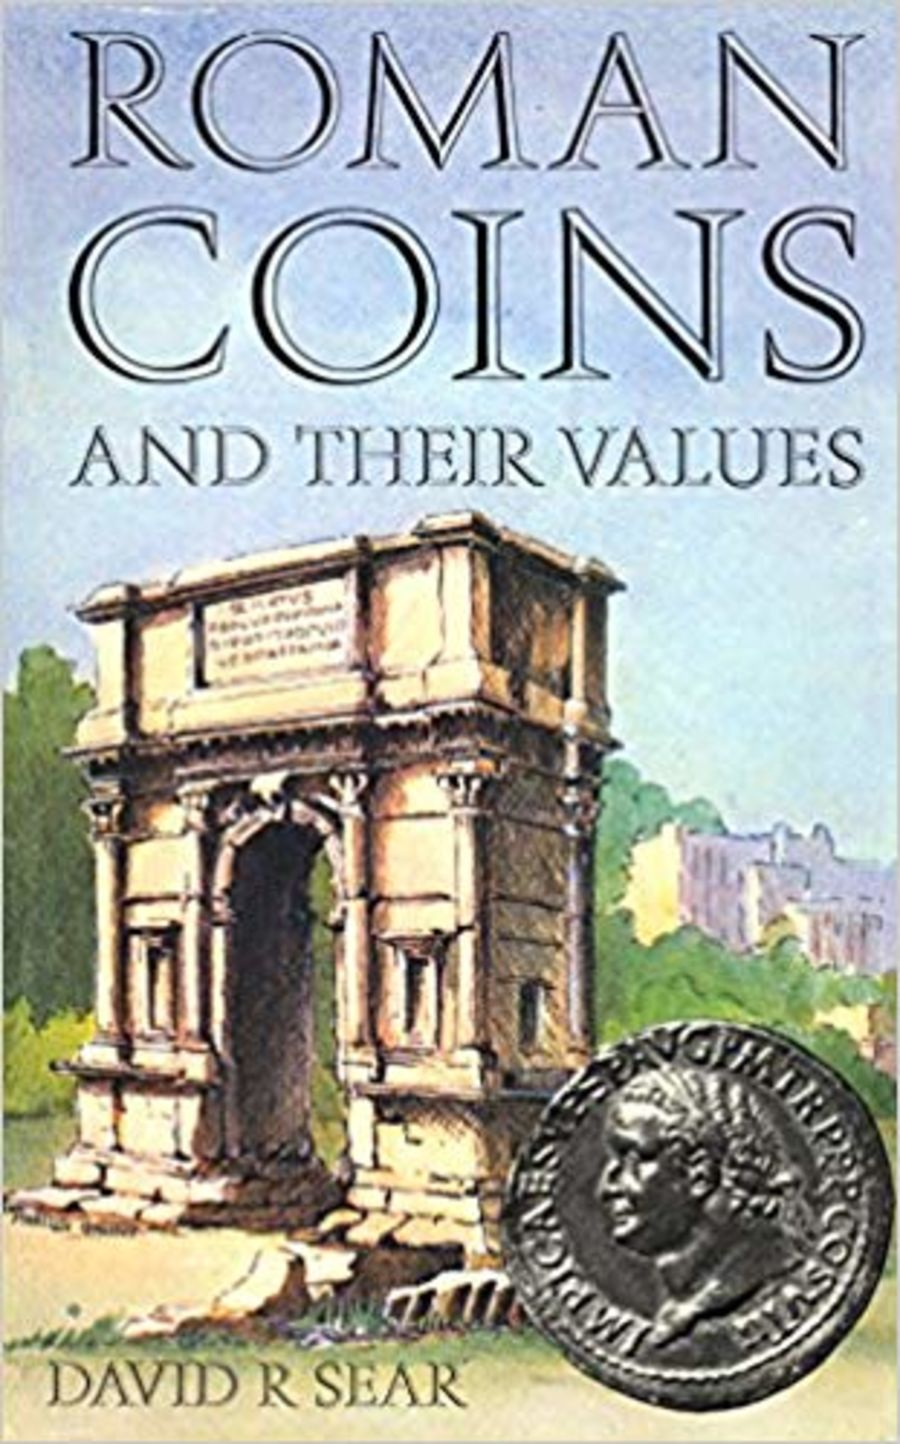 Roman coins and their values, Second edition